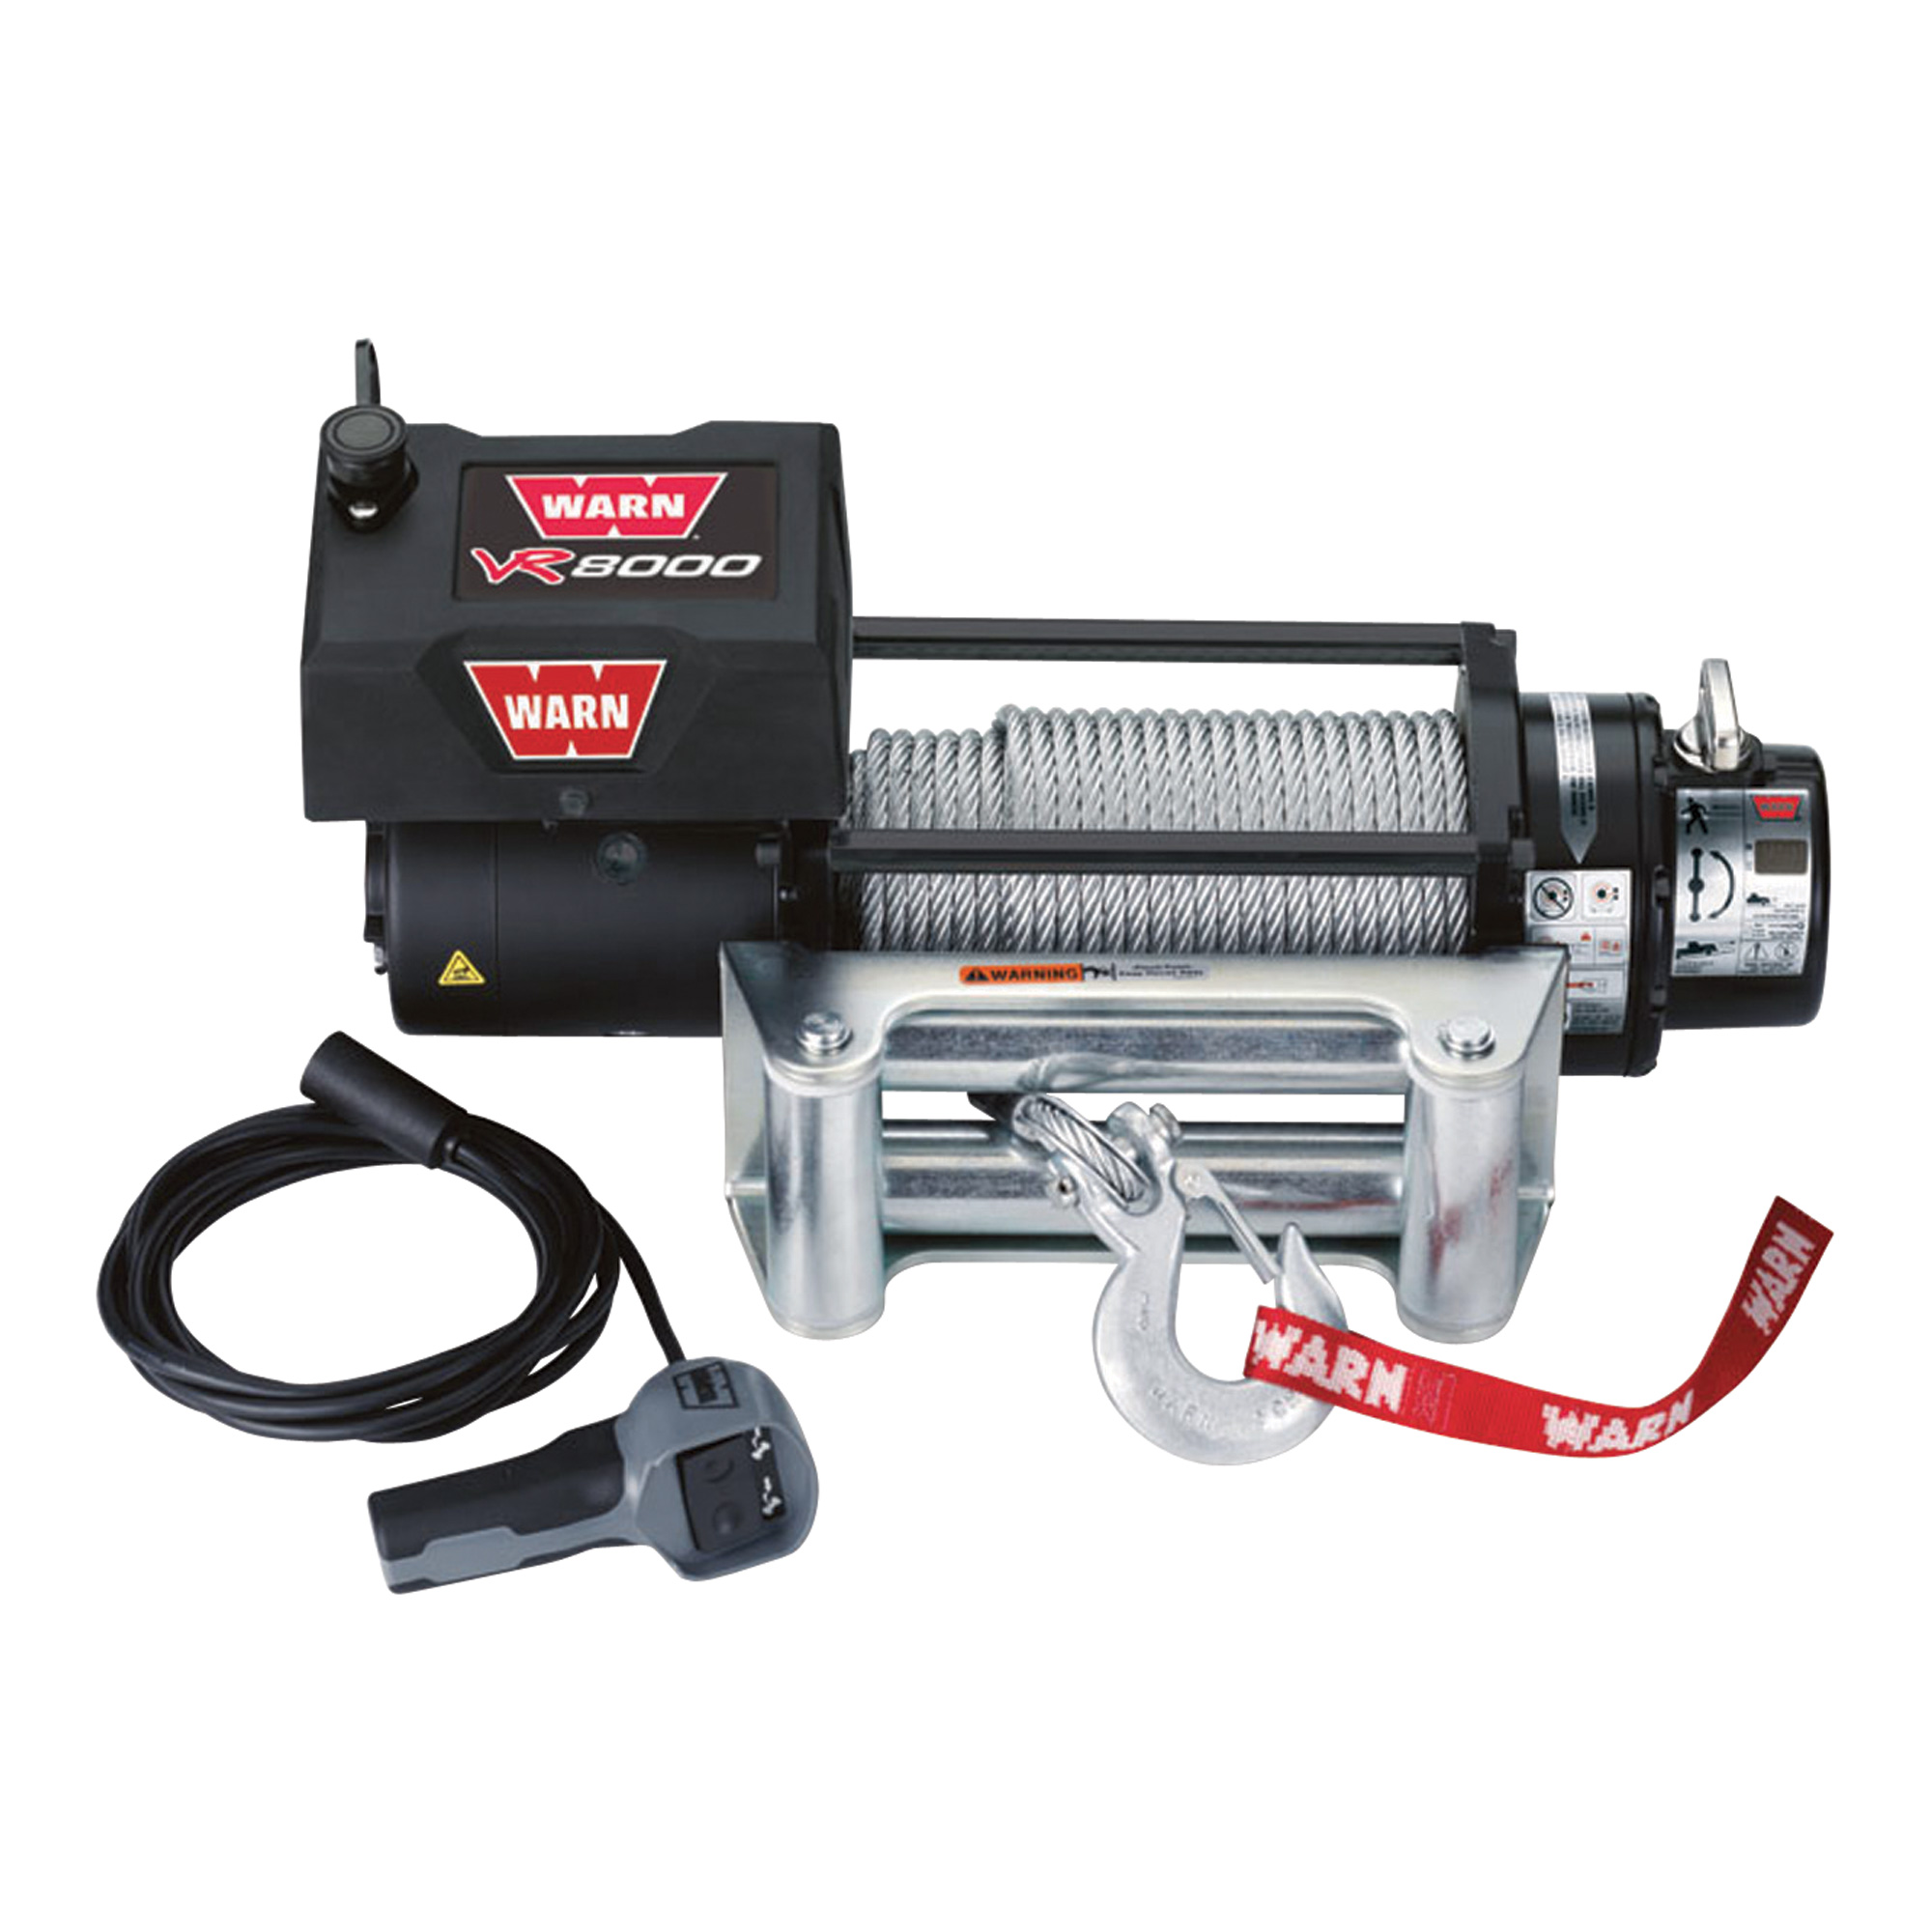 Warn 8000i Winch Wiring Guide And Troubleshooting Of Diagram X8000i Old Model 8000 Get Free Image About Ce M8000 Lb